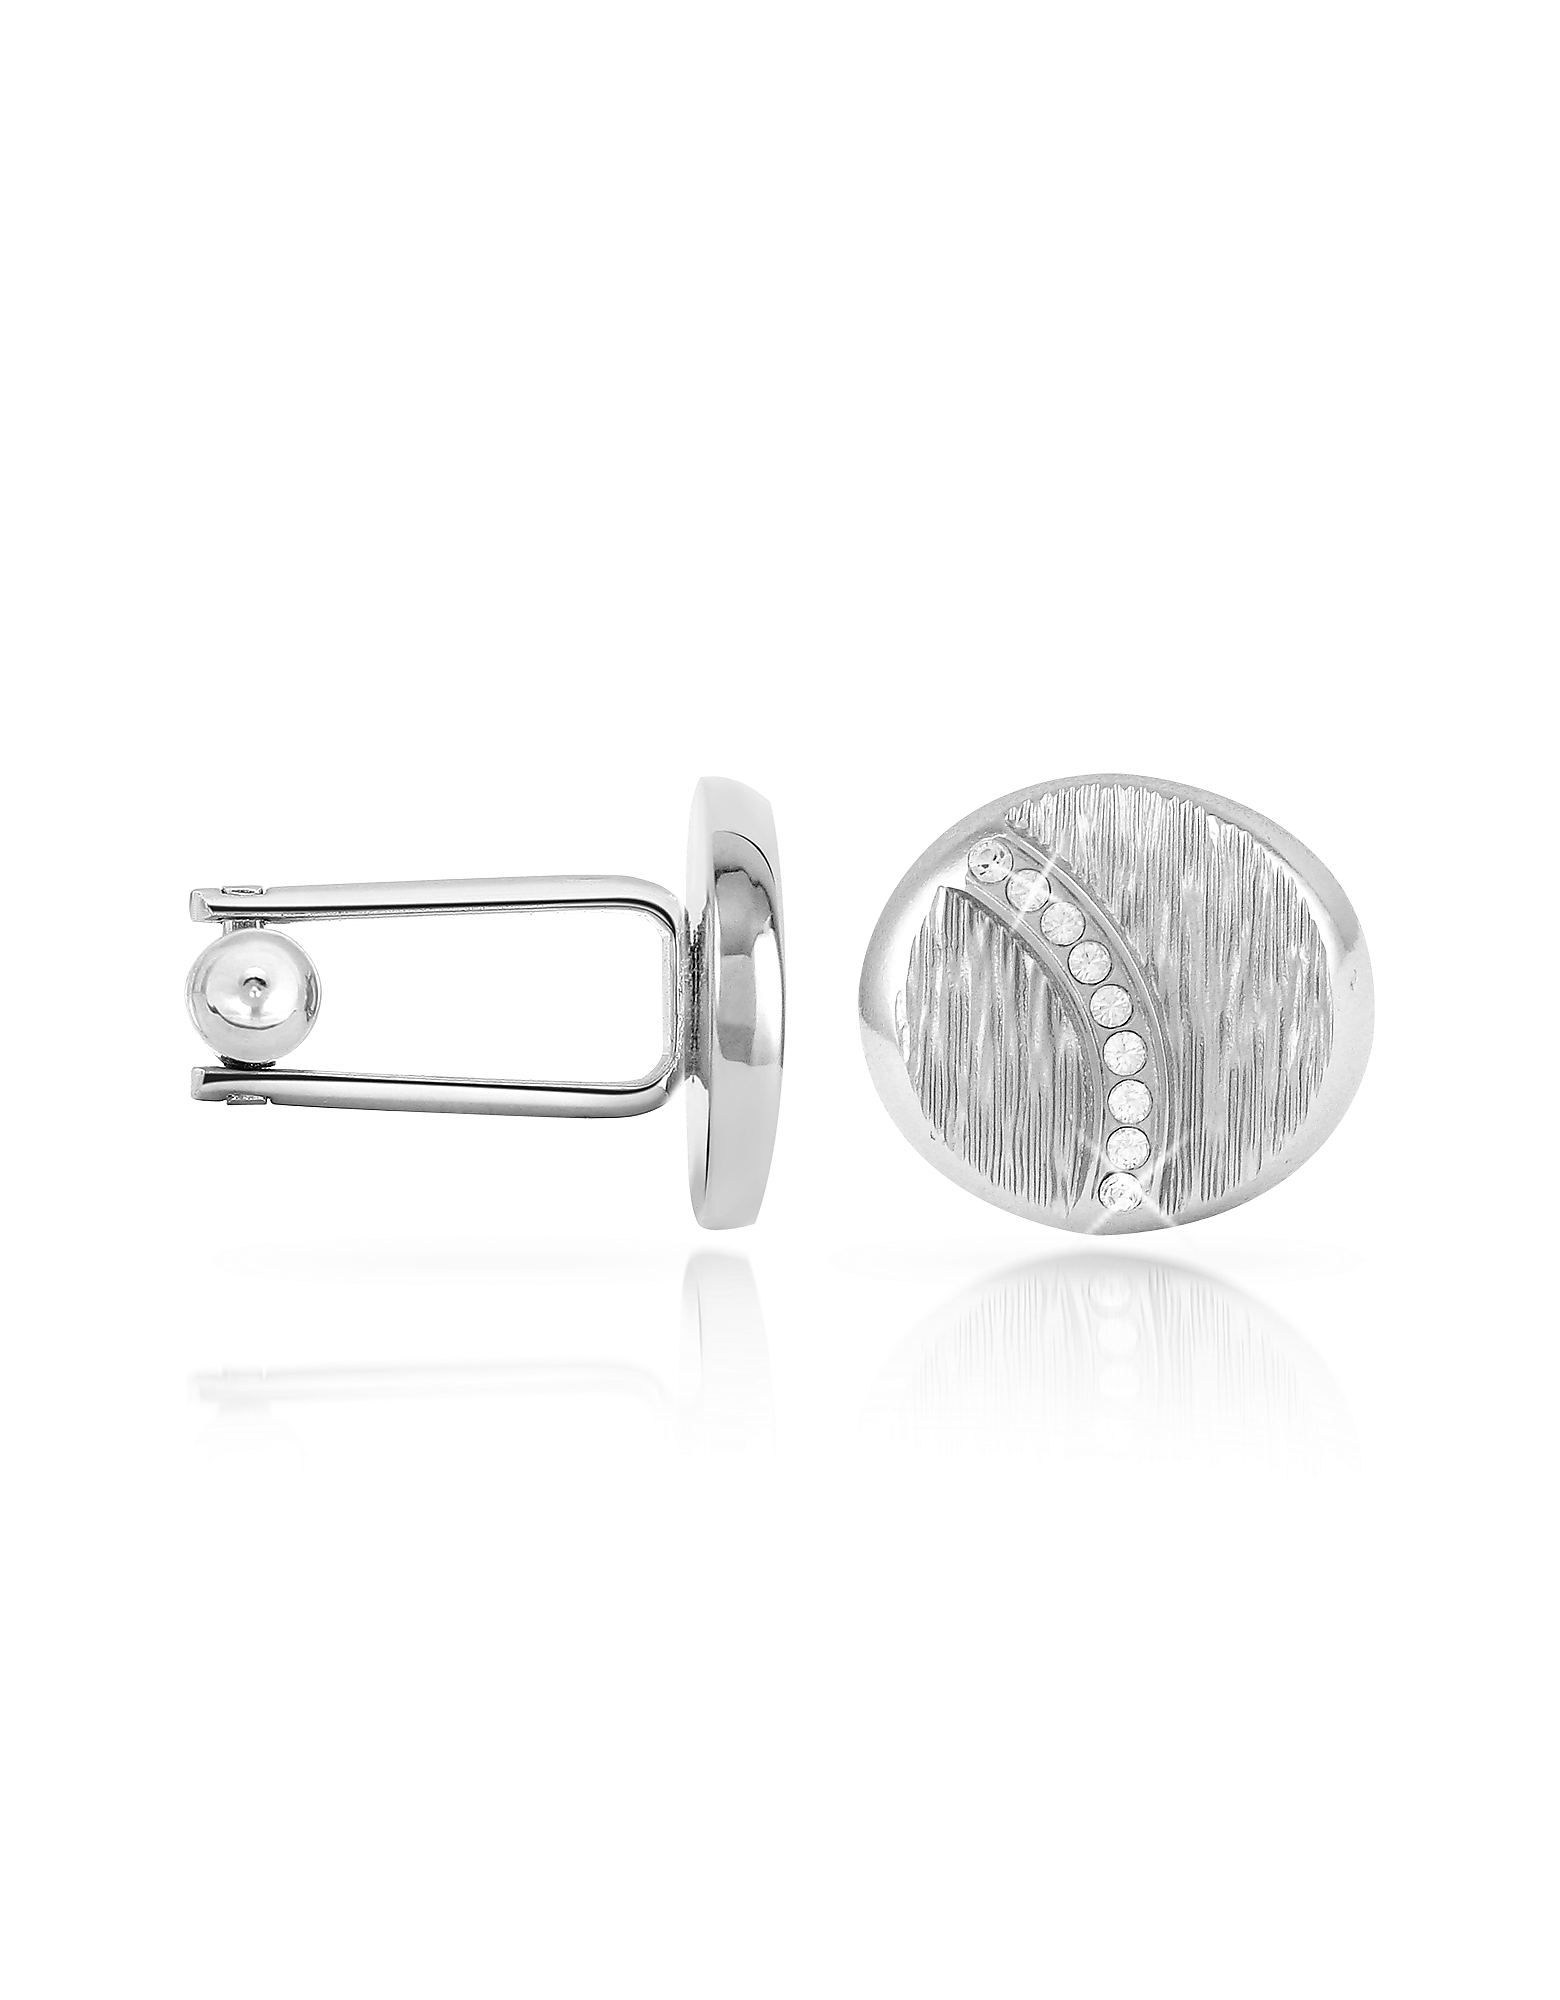 Forzieri Cufflinks, Textured Oval Cuff Links